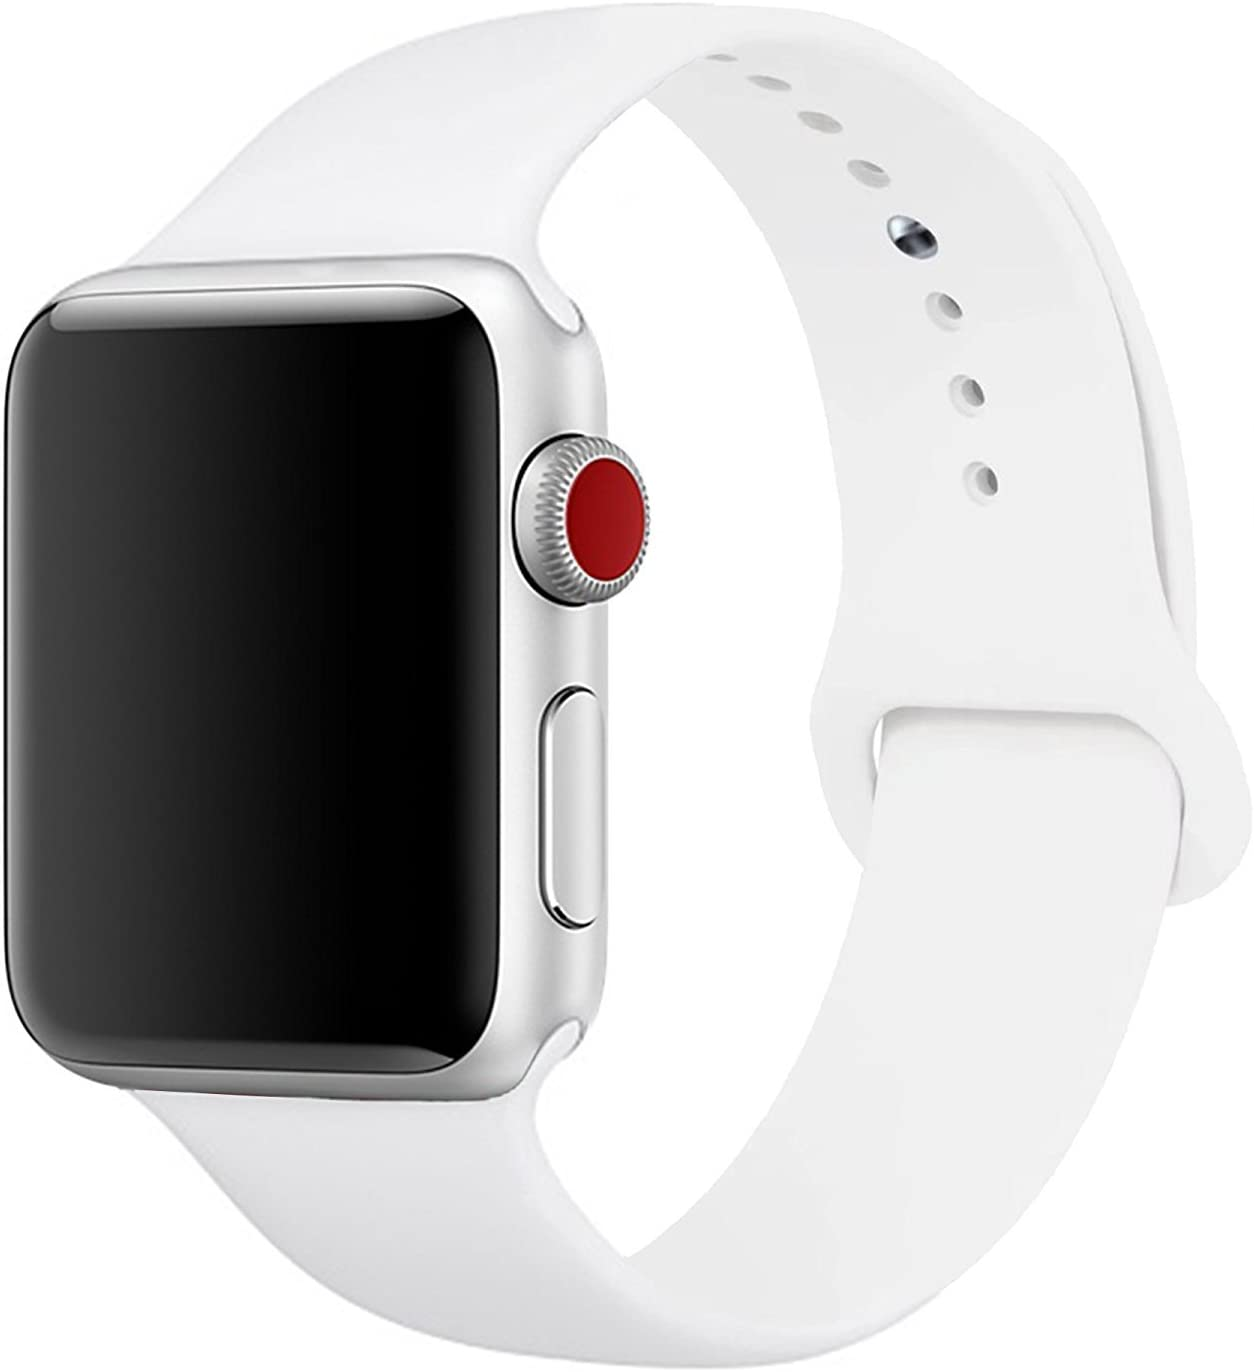 HeiKe Watch Band 38mm Compatible for Apple iWatch,Soft Silicone Sport Replacement Wristband with Holes for Apple iWatch Series 1/2/3/4 Nike+ Edition